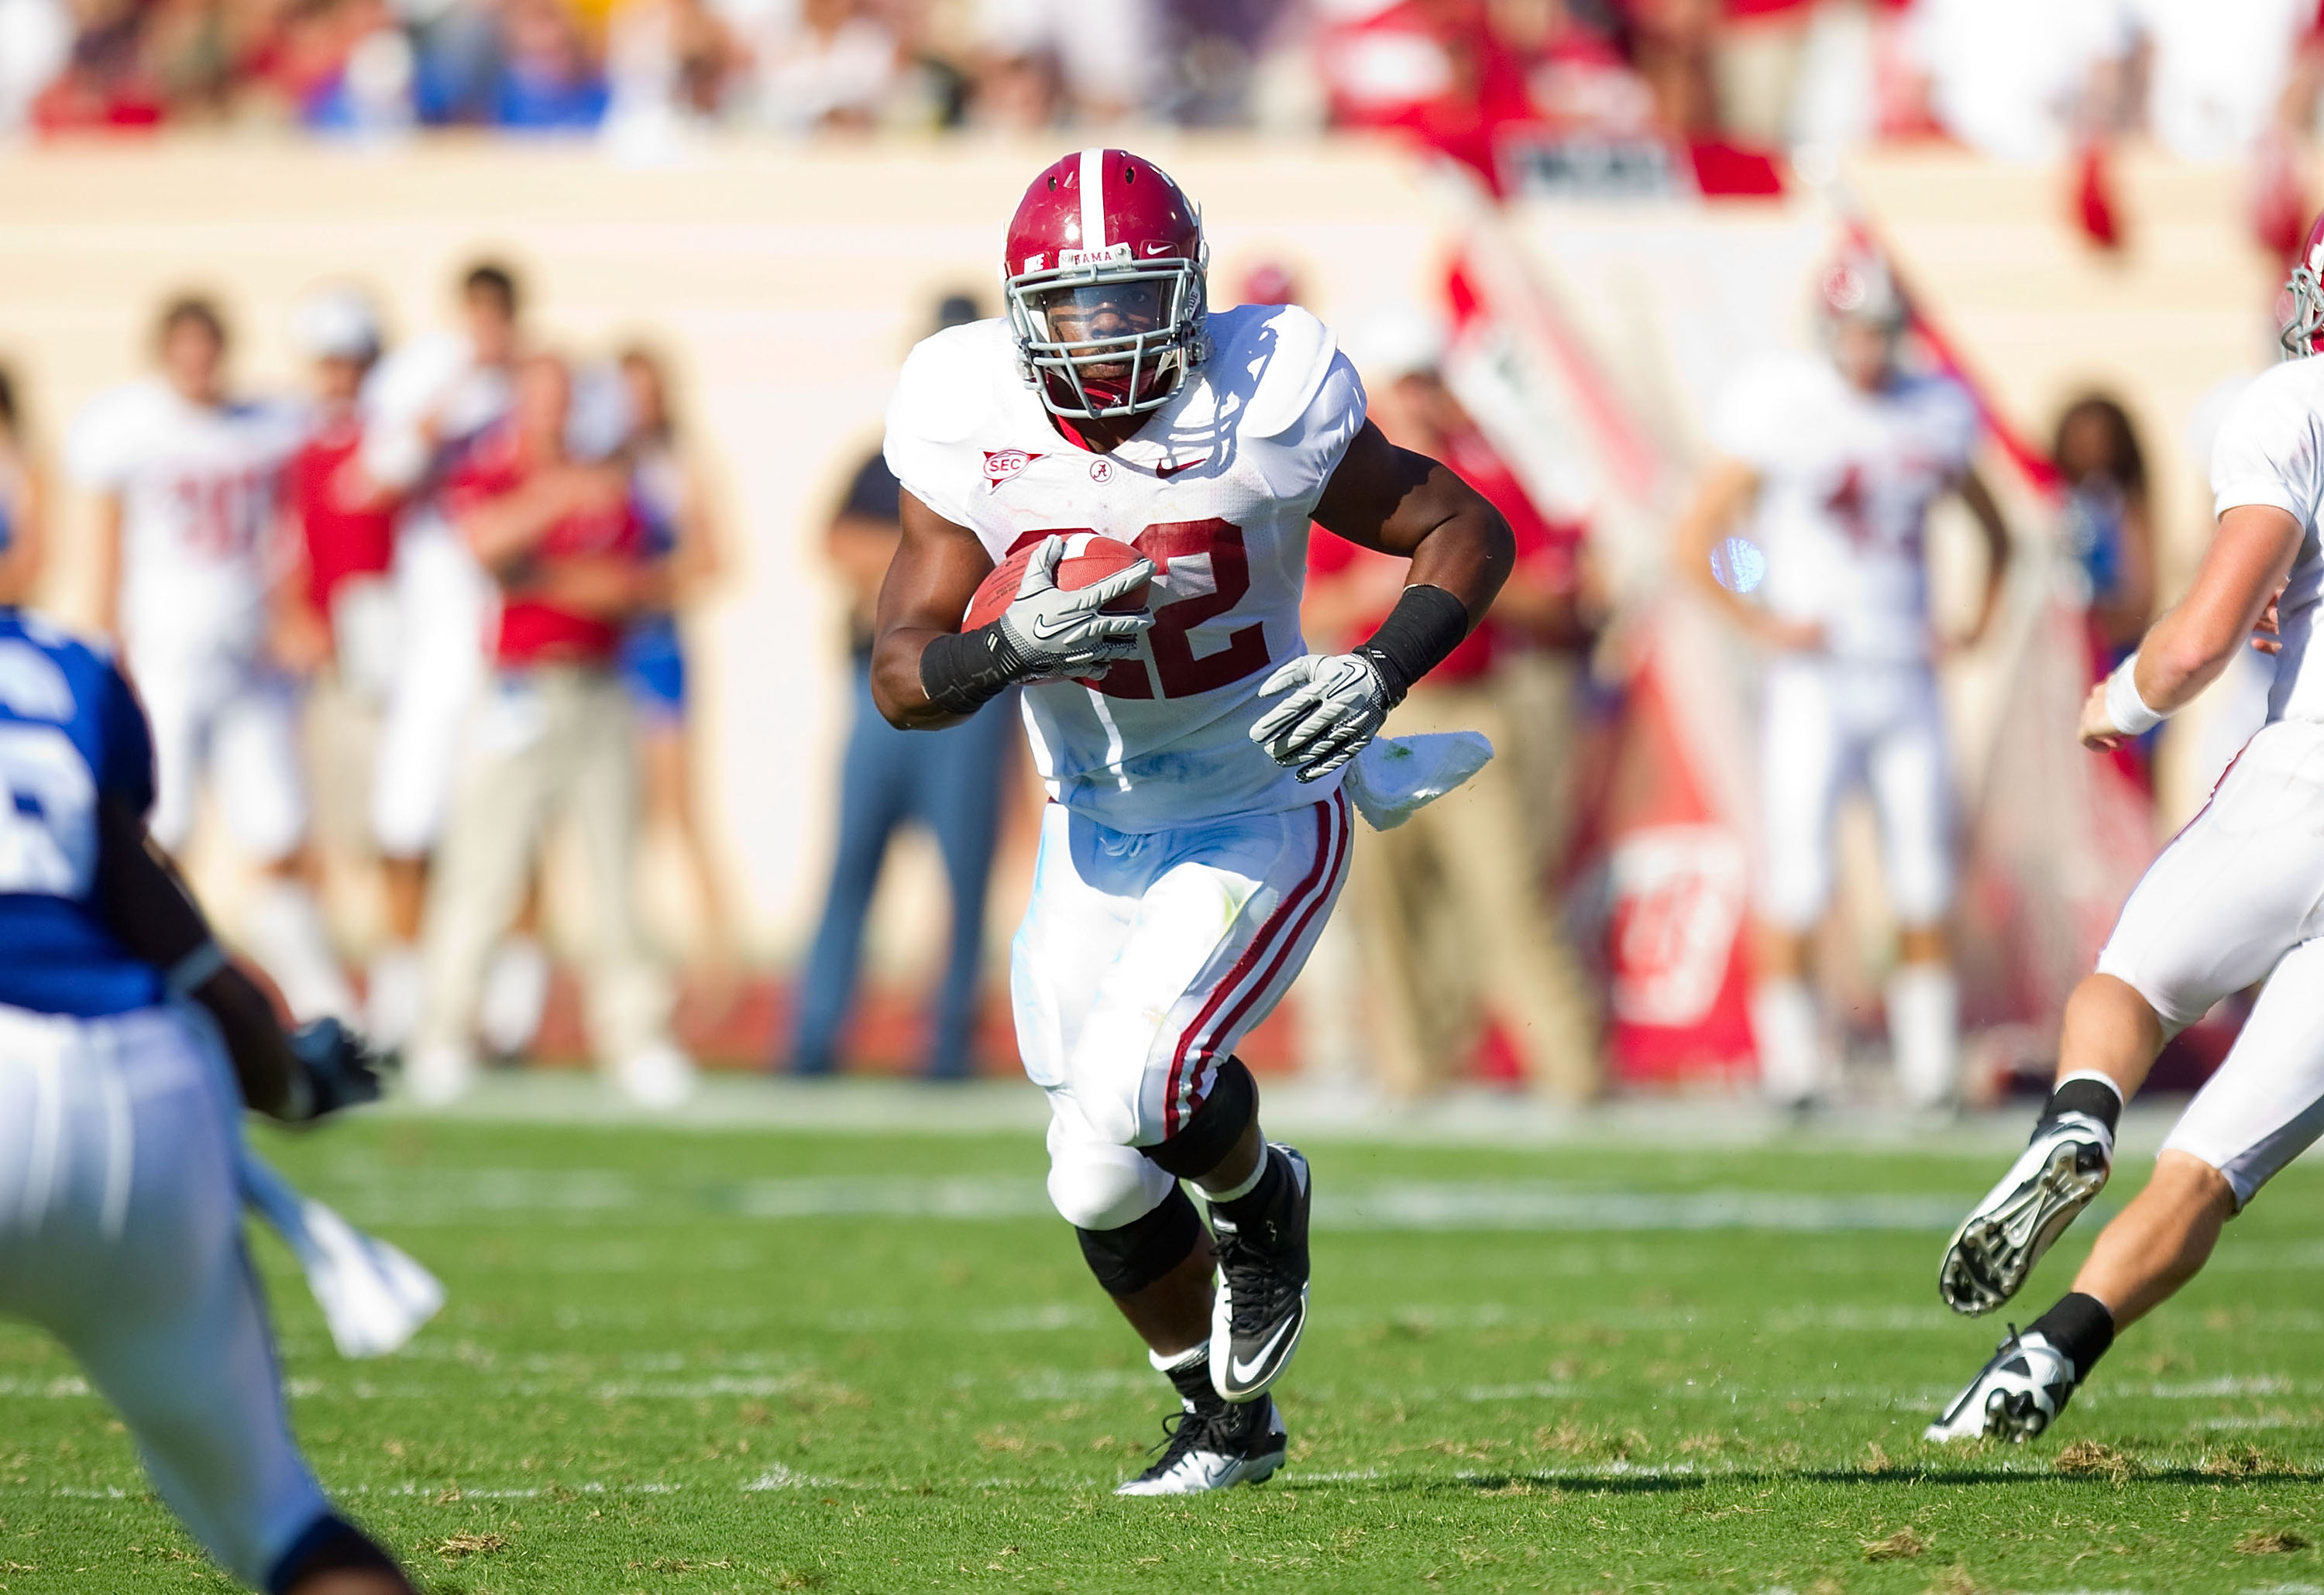 After a comeback win against Arkansas, what will Mark Ingram and the Tide do for an encore?